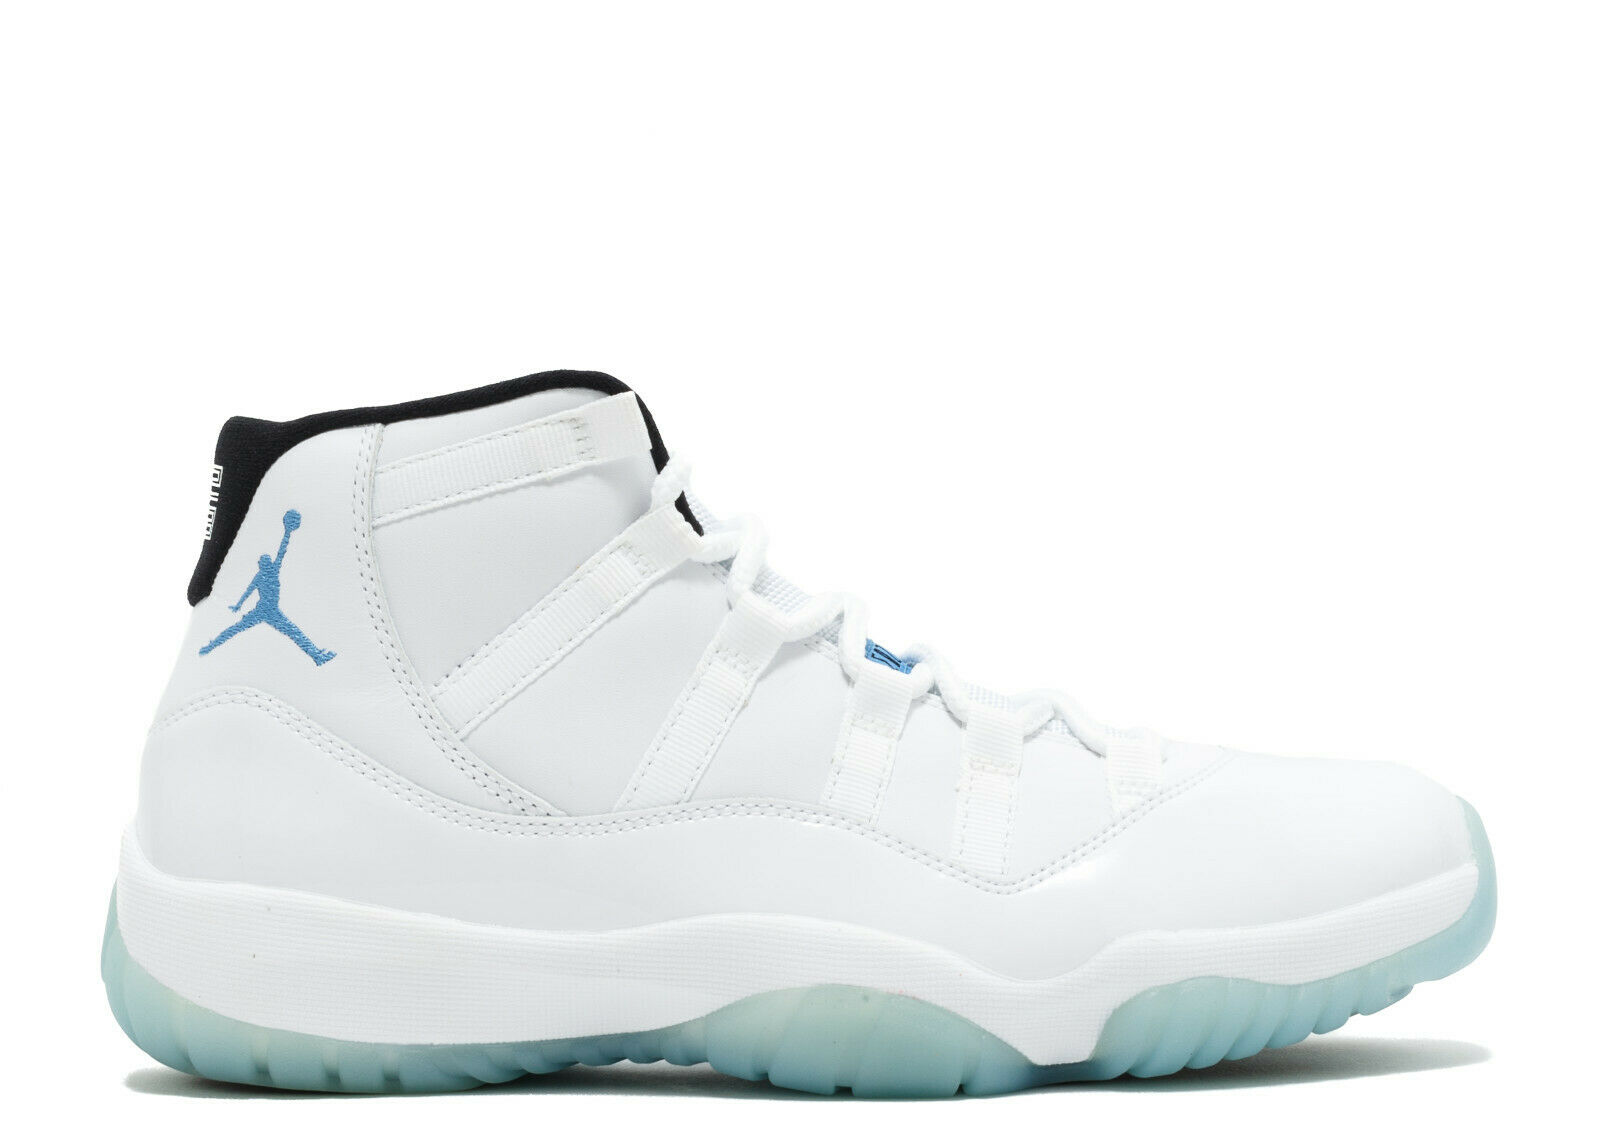 Nike Air Jordan 11 Legend bluee White Colombia Columbia XI Retro 378037-117 DS